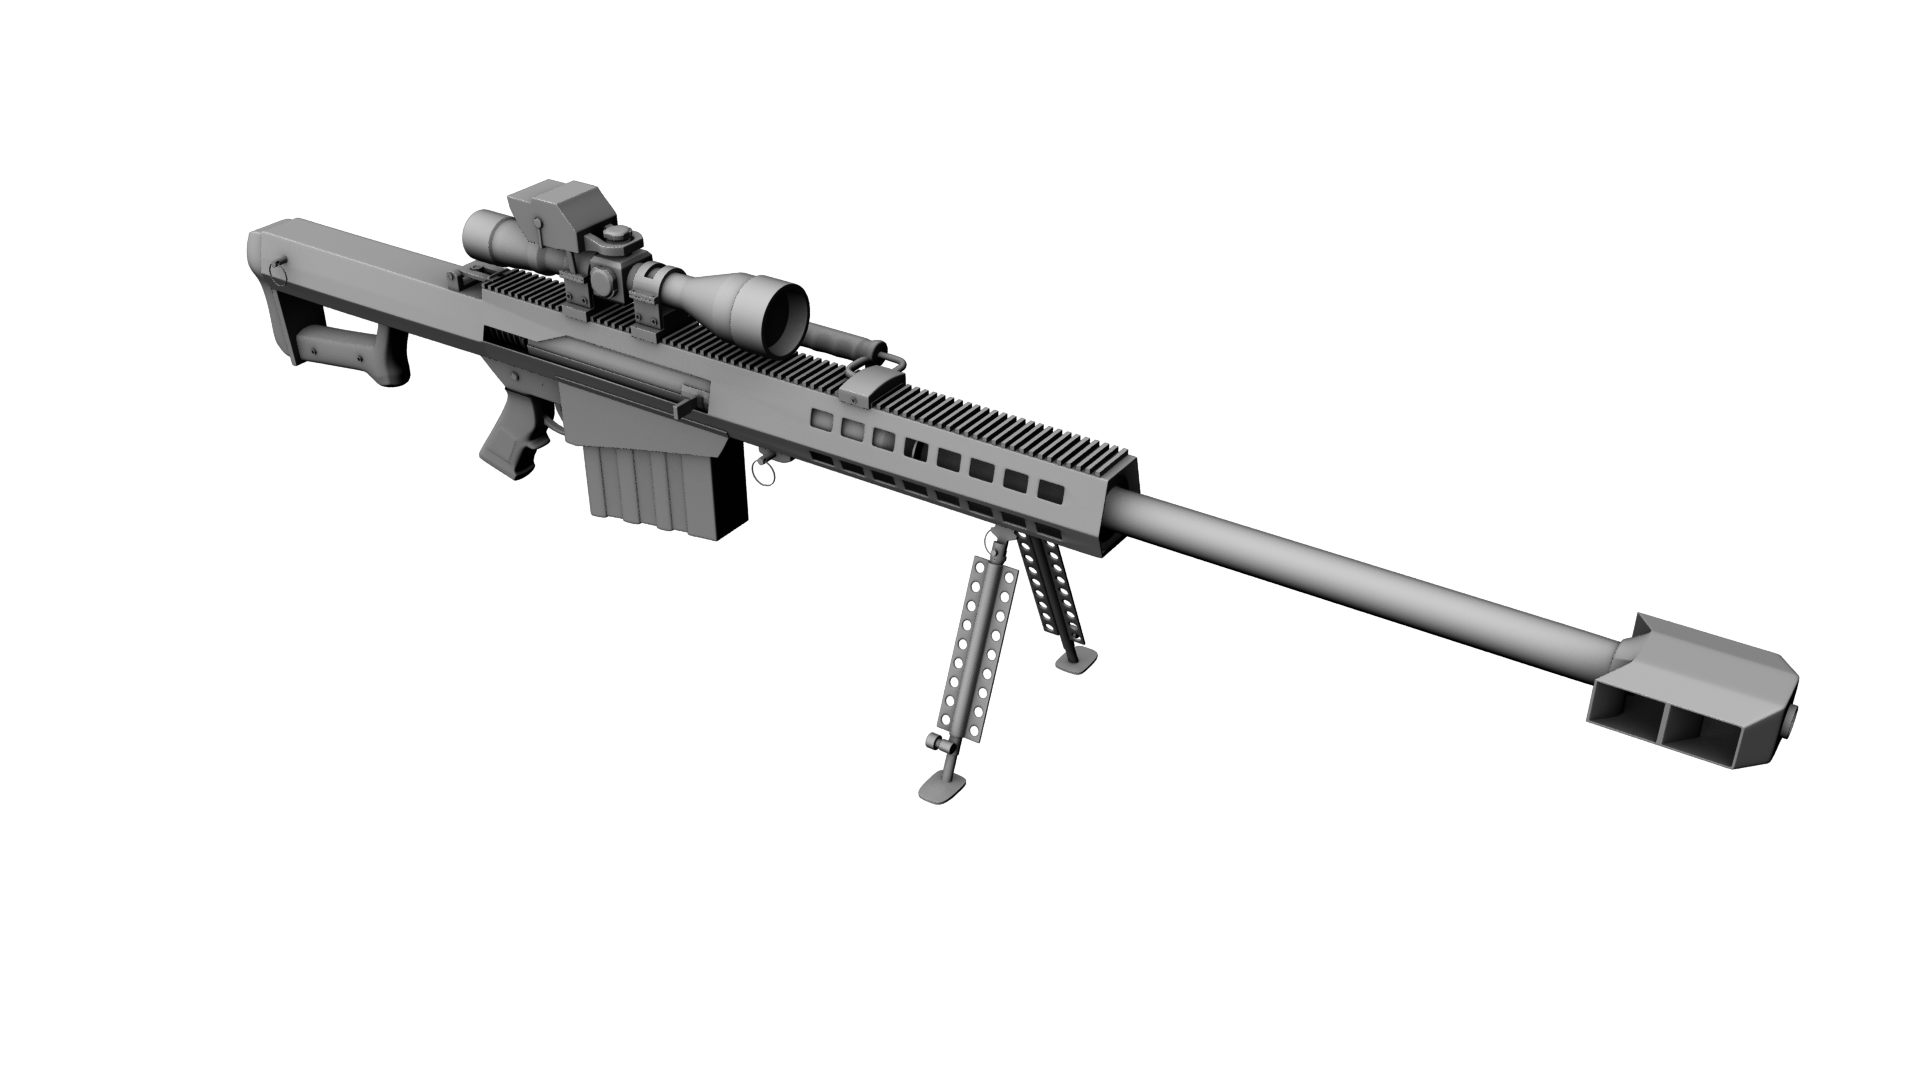 Transparent rifle 50 cal sniper. Png